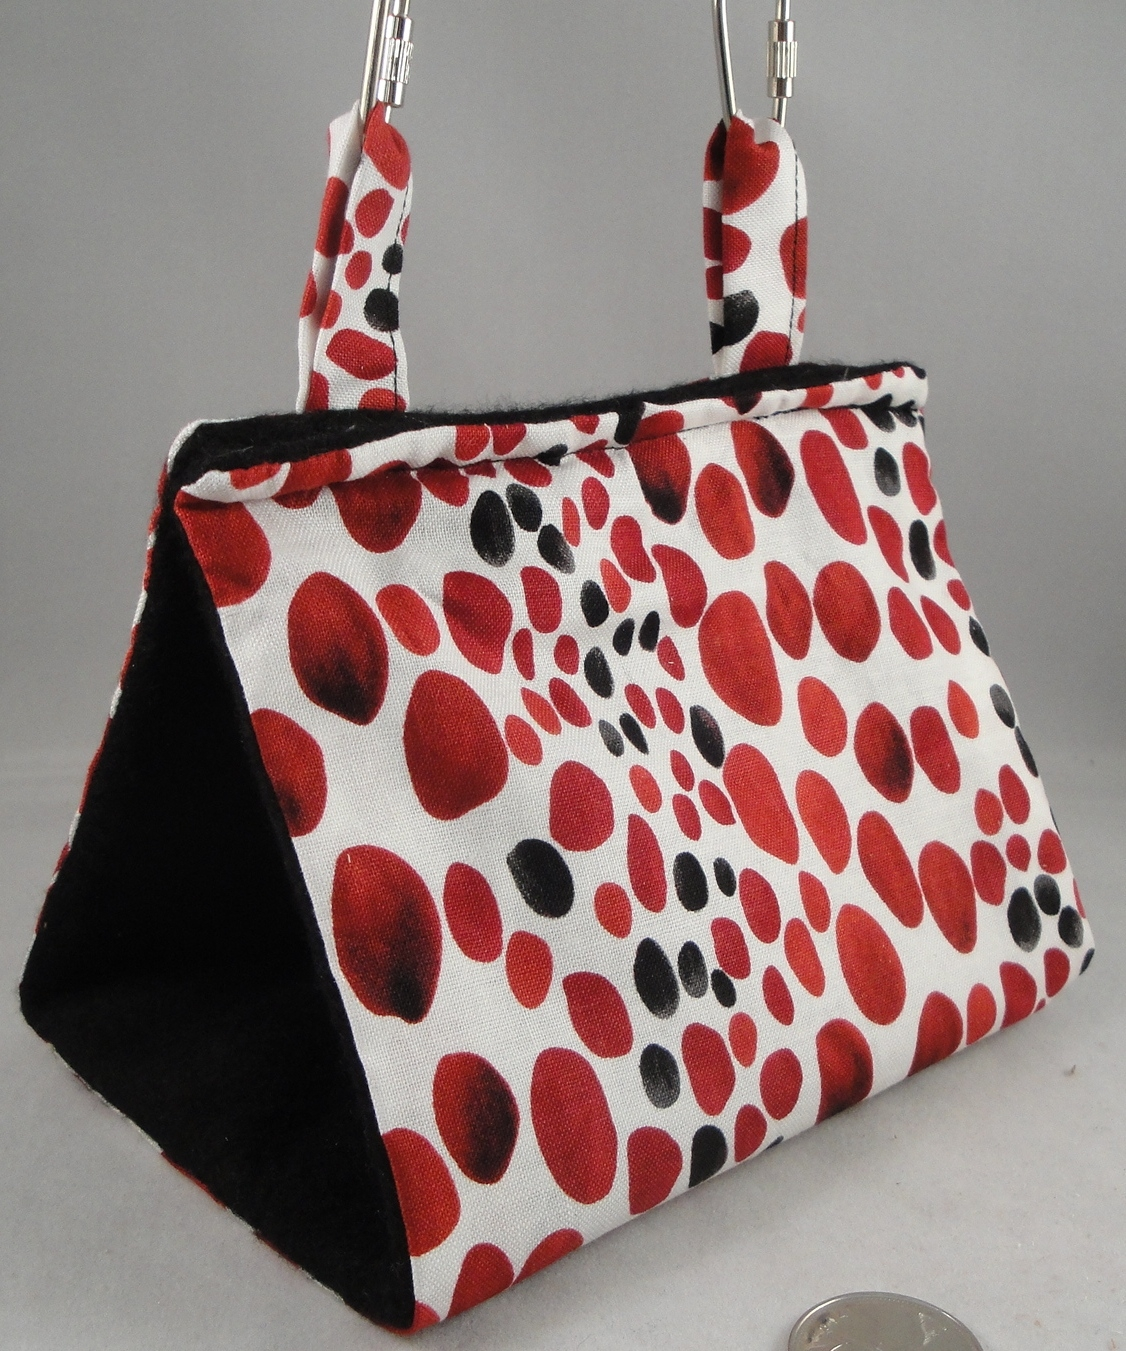 Red and Black Spots - Small